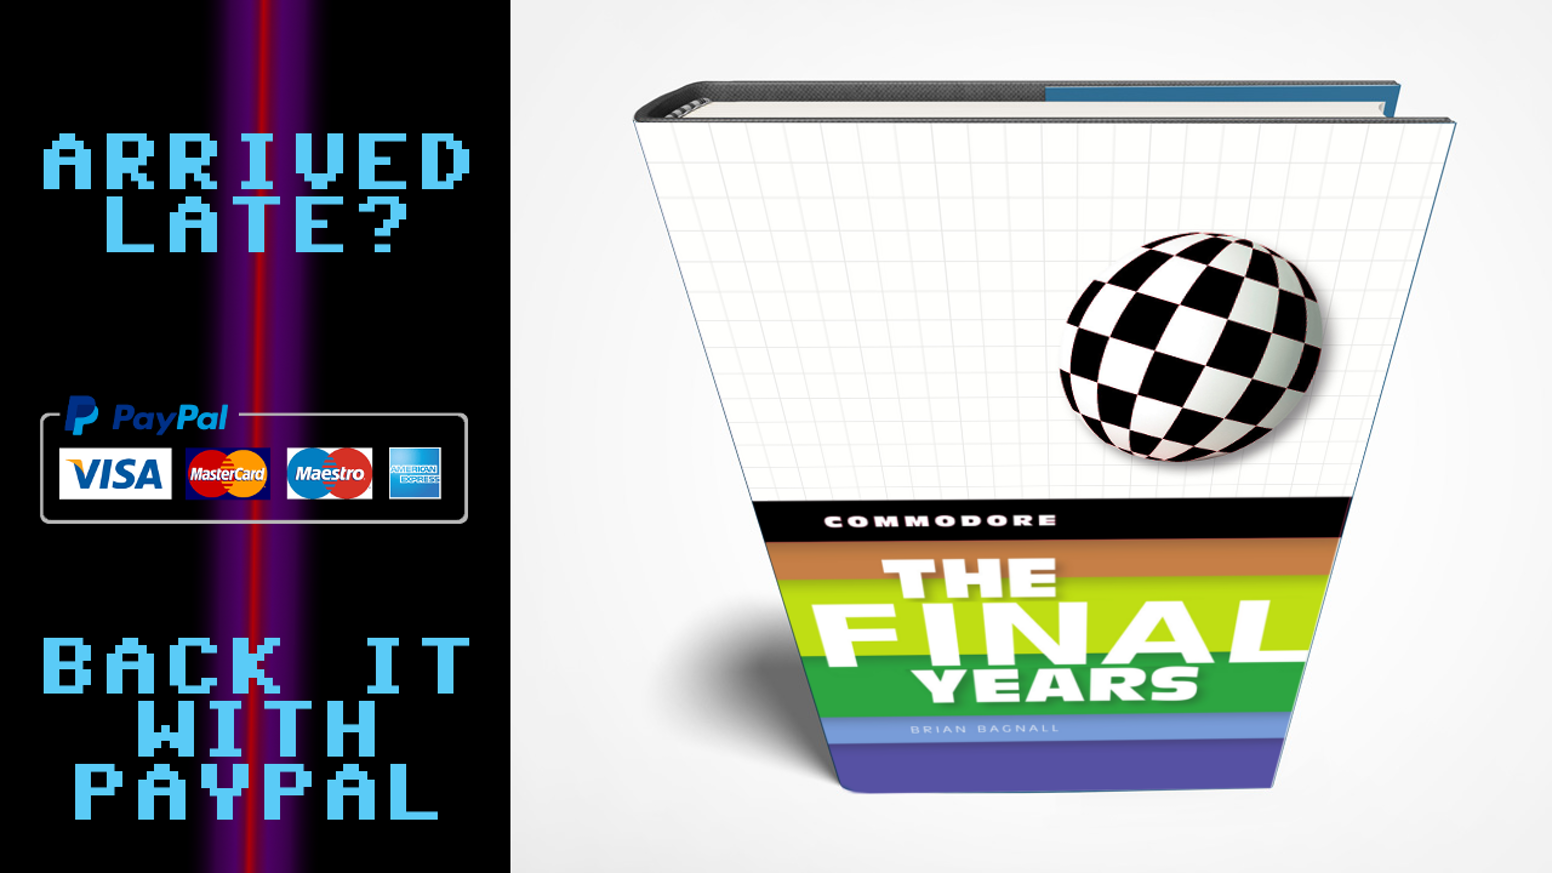 The final book in the Commodore Amiga trilogy.  Detailed research and refined writing in a quality hardcover binding.